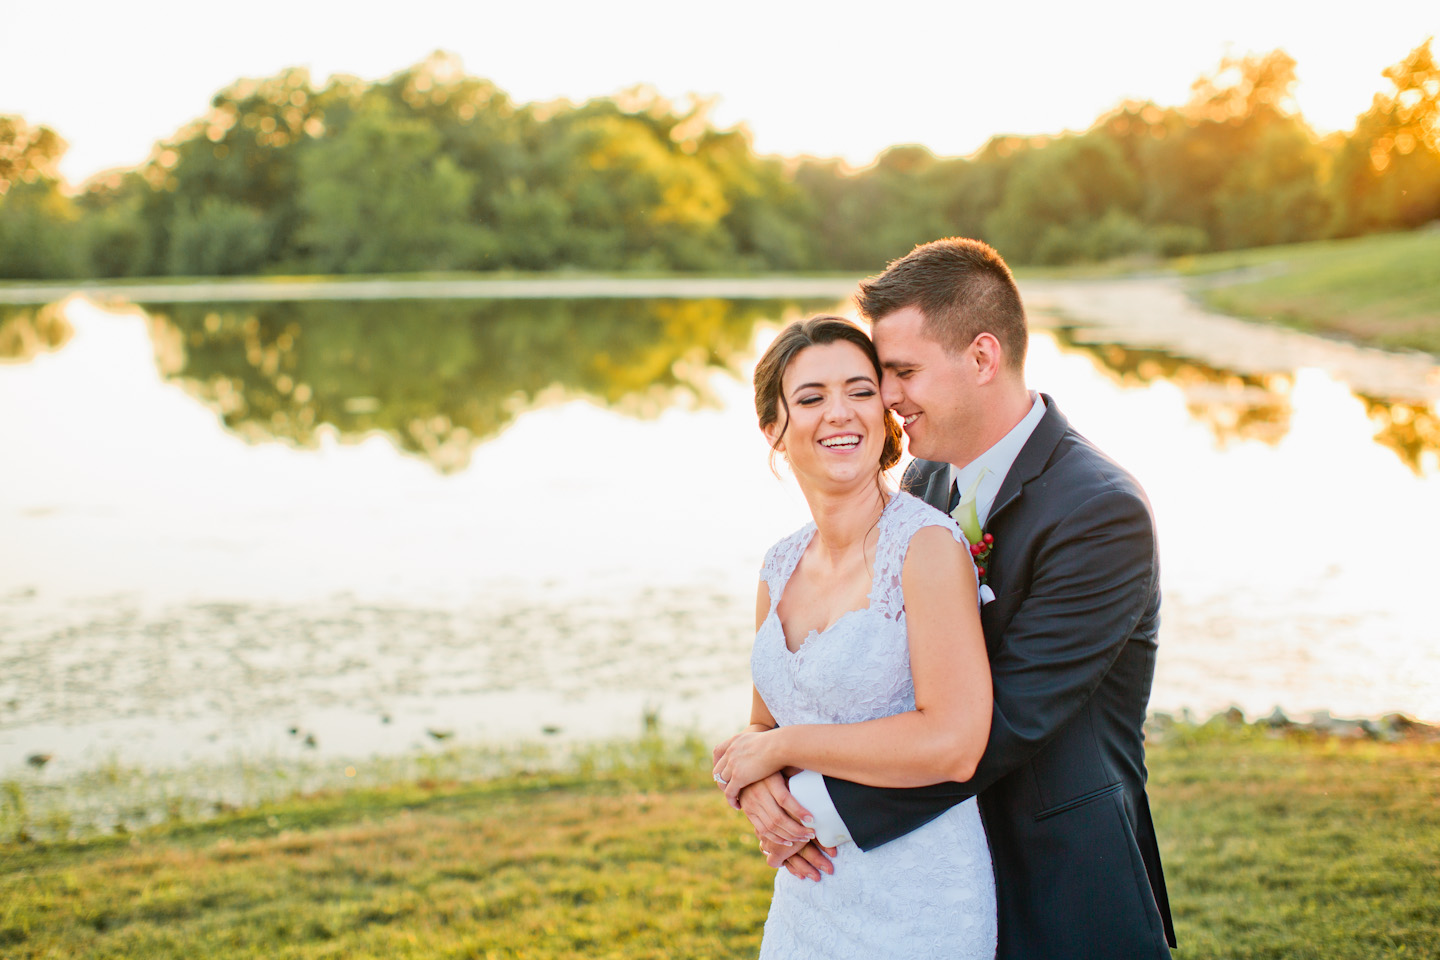 bride and groom laughing in sunset photo